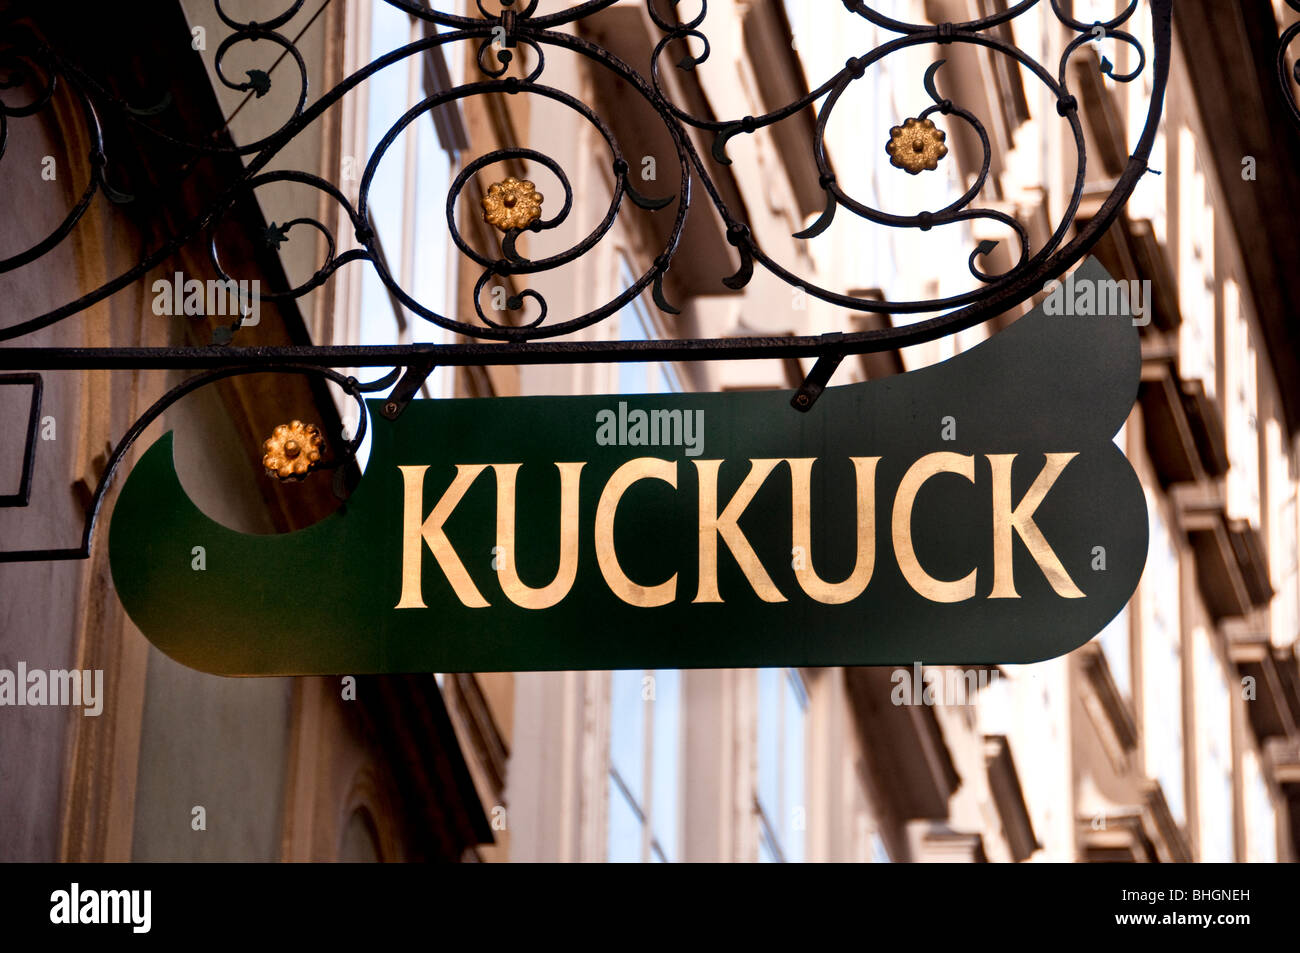 Sign outside the Kuckuck restaurant in central Vienna Austria - Stock Image